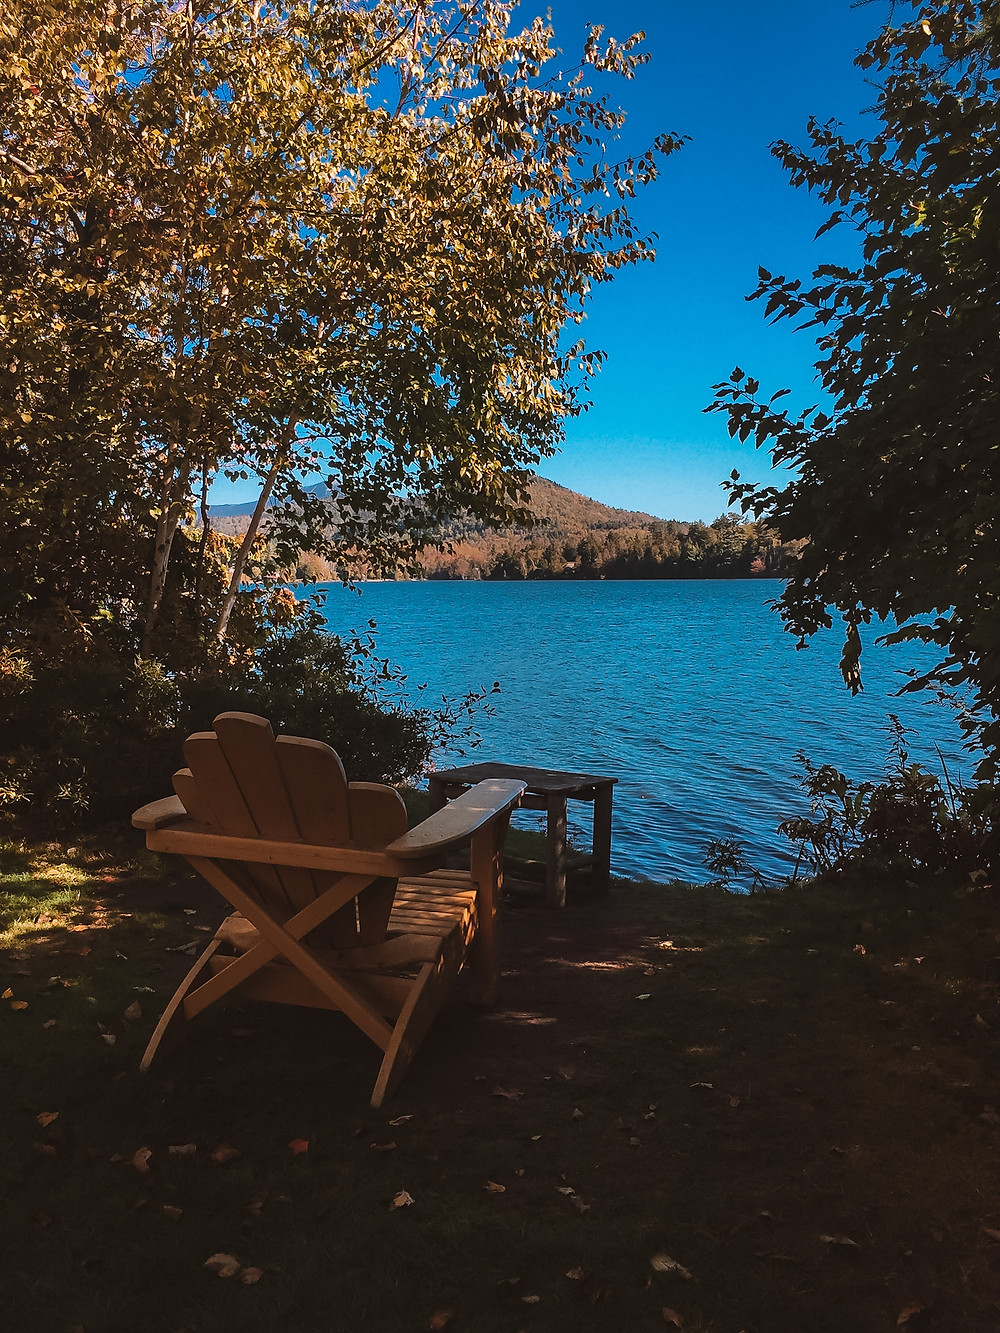 Wilmington, New York has an amazing KOA to camp at. You can stay in a cabin or get a tent site. Check out my camping weekend to Lake Placid, New York and explore this beautiful location in the Northeast of the United States.